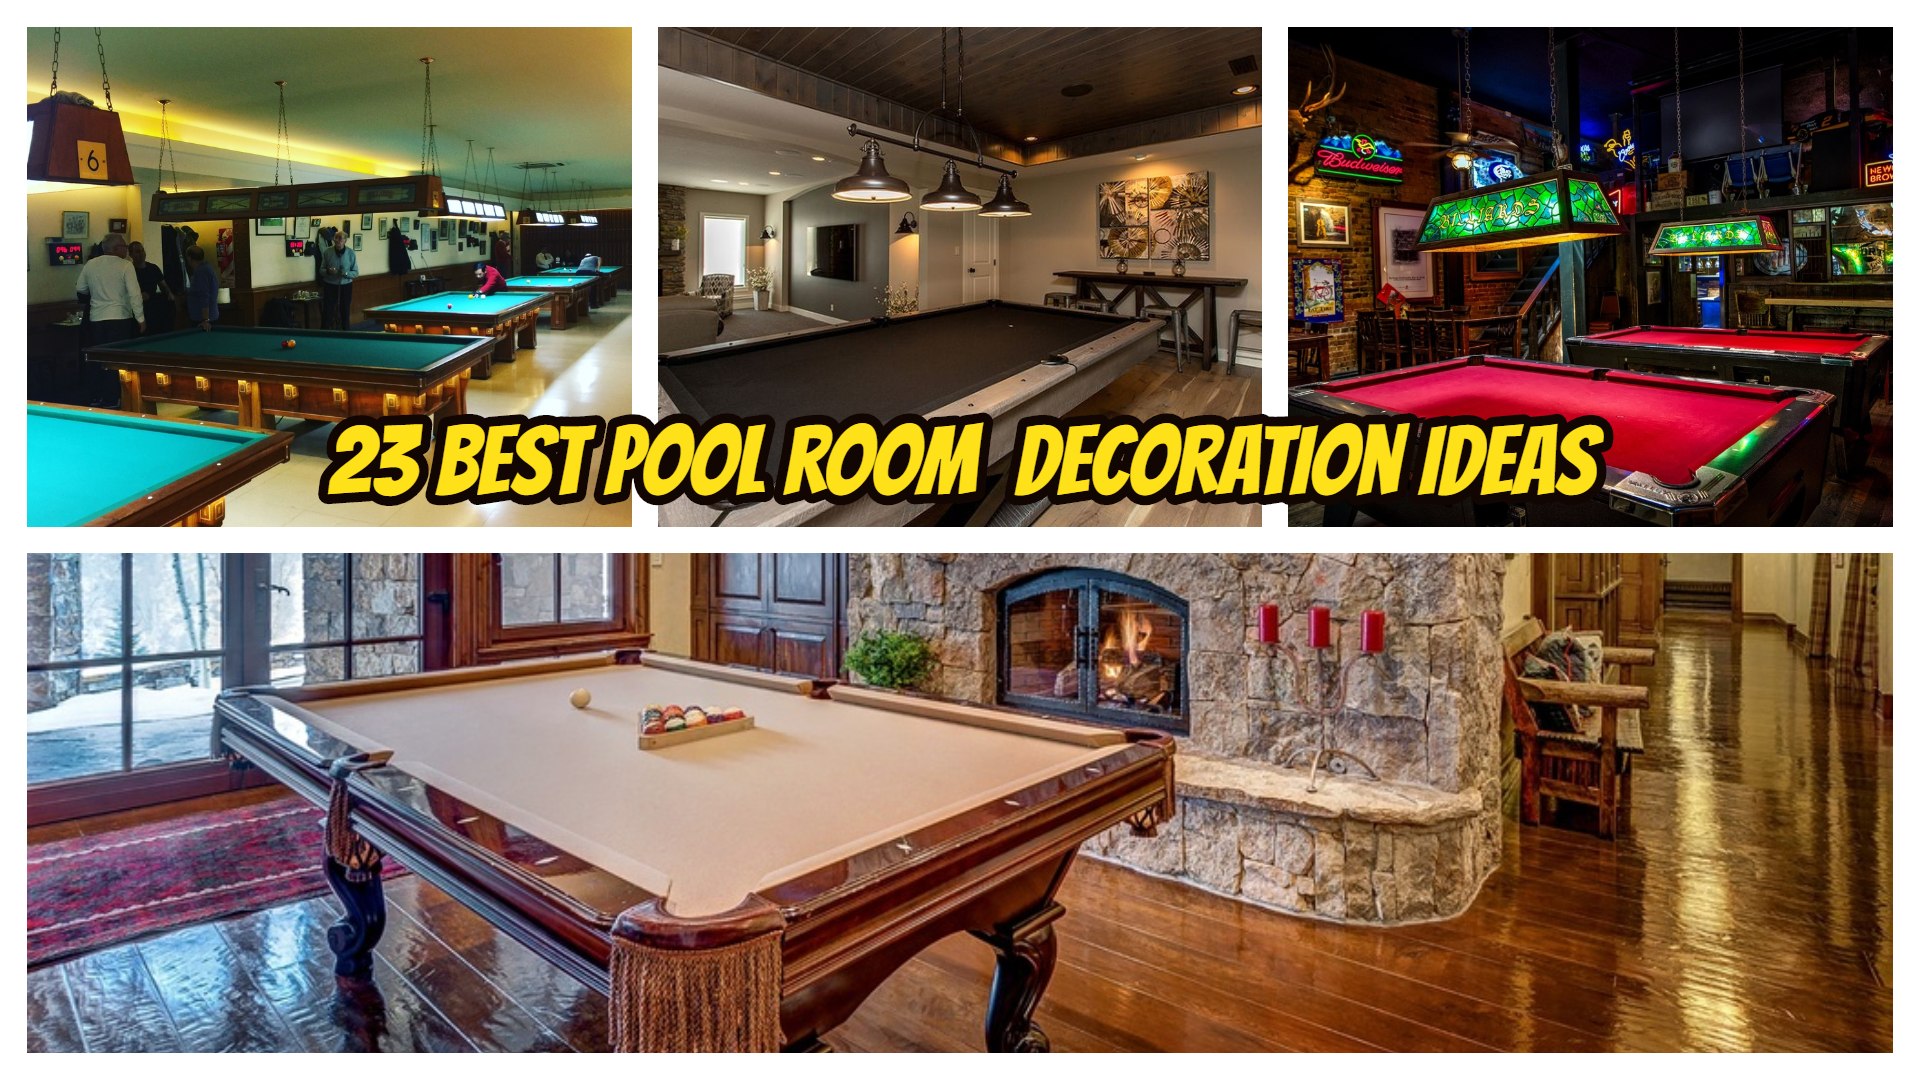 Pool Room Decoration